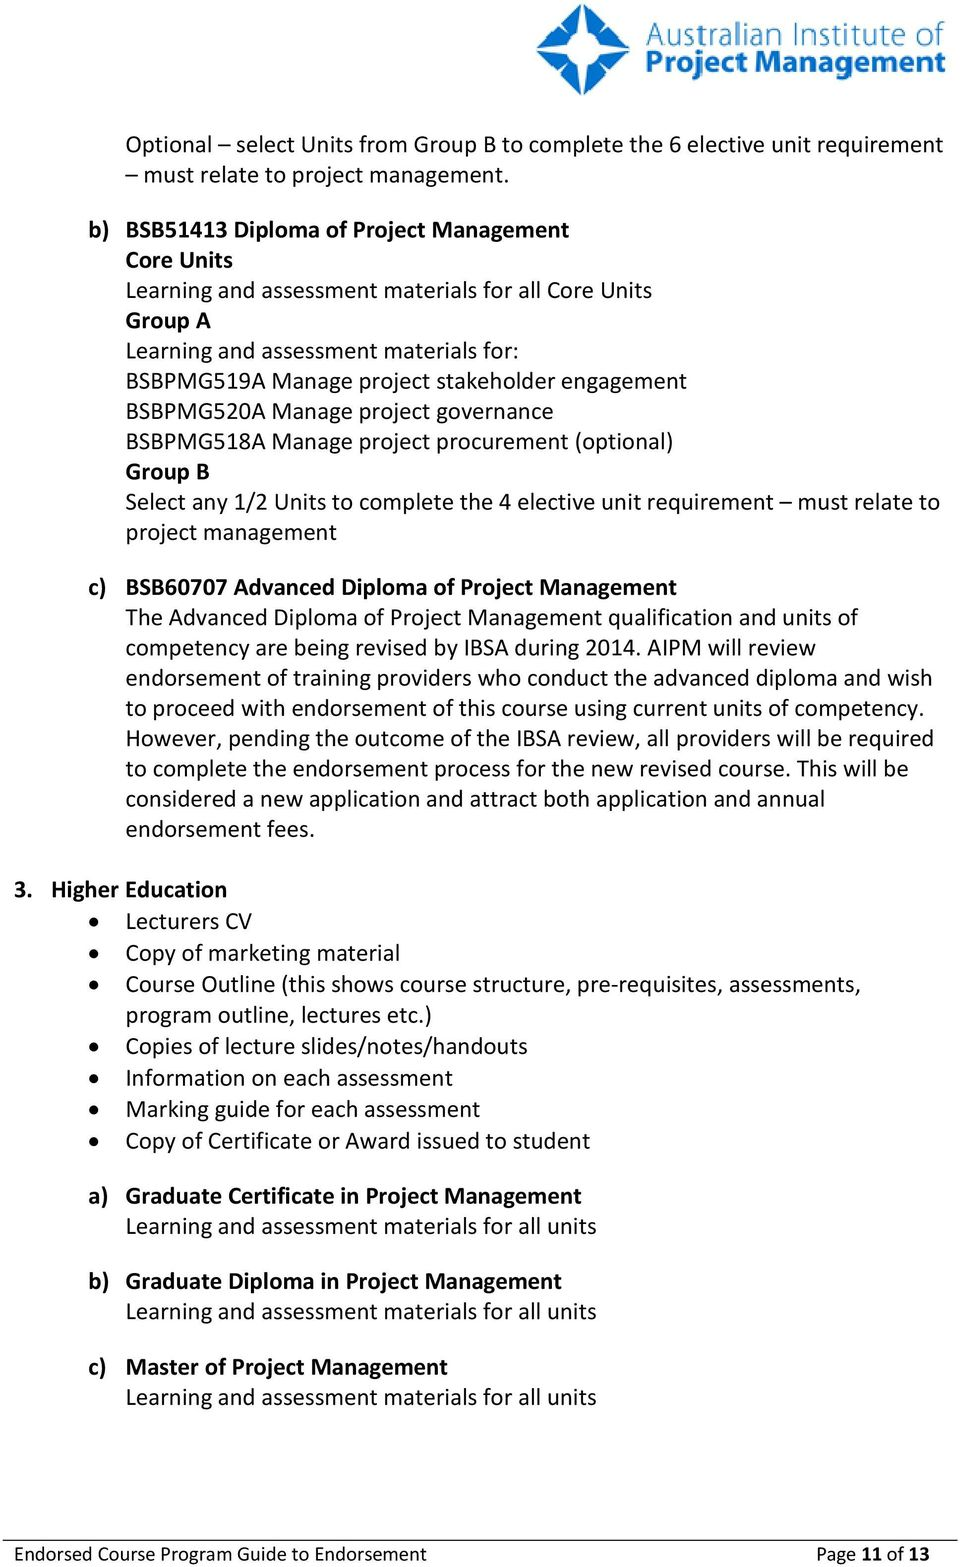 engagement BSBPMG520A Manage project governance BSBPMG518A Manage project procurement (optional) Group B Select any 1/2 Units to complete the 4 elective unit requirement must relate to project